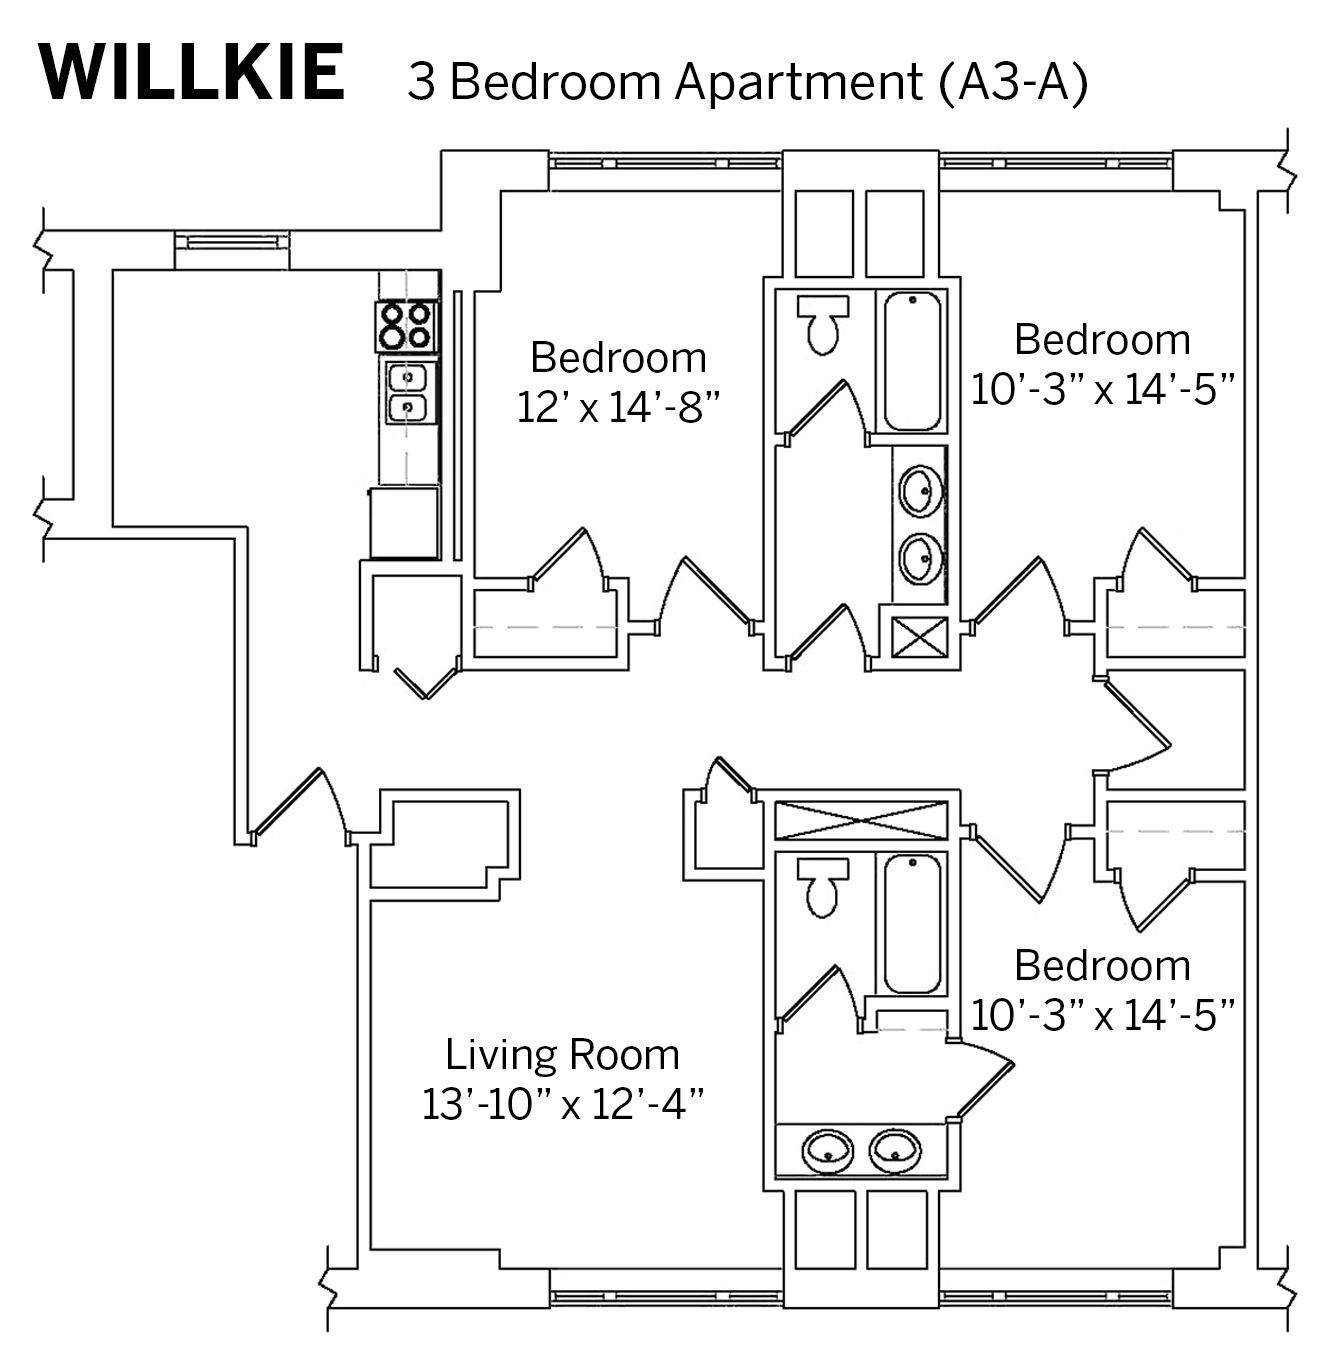 Average Square Footage Of A 1 Bedroom Apartment 28 Images Average Square Footage Of A 1